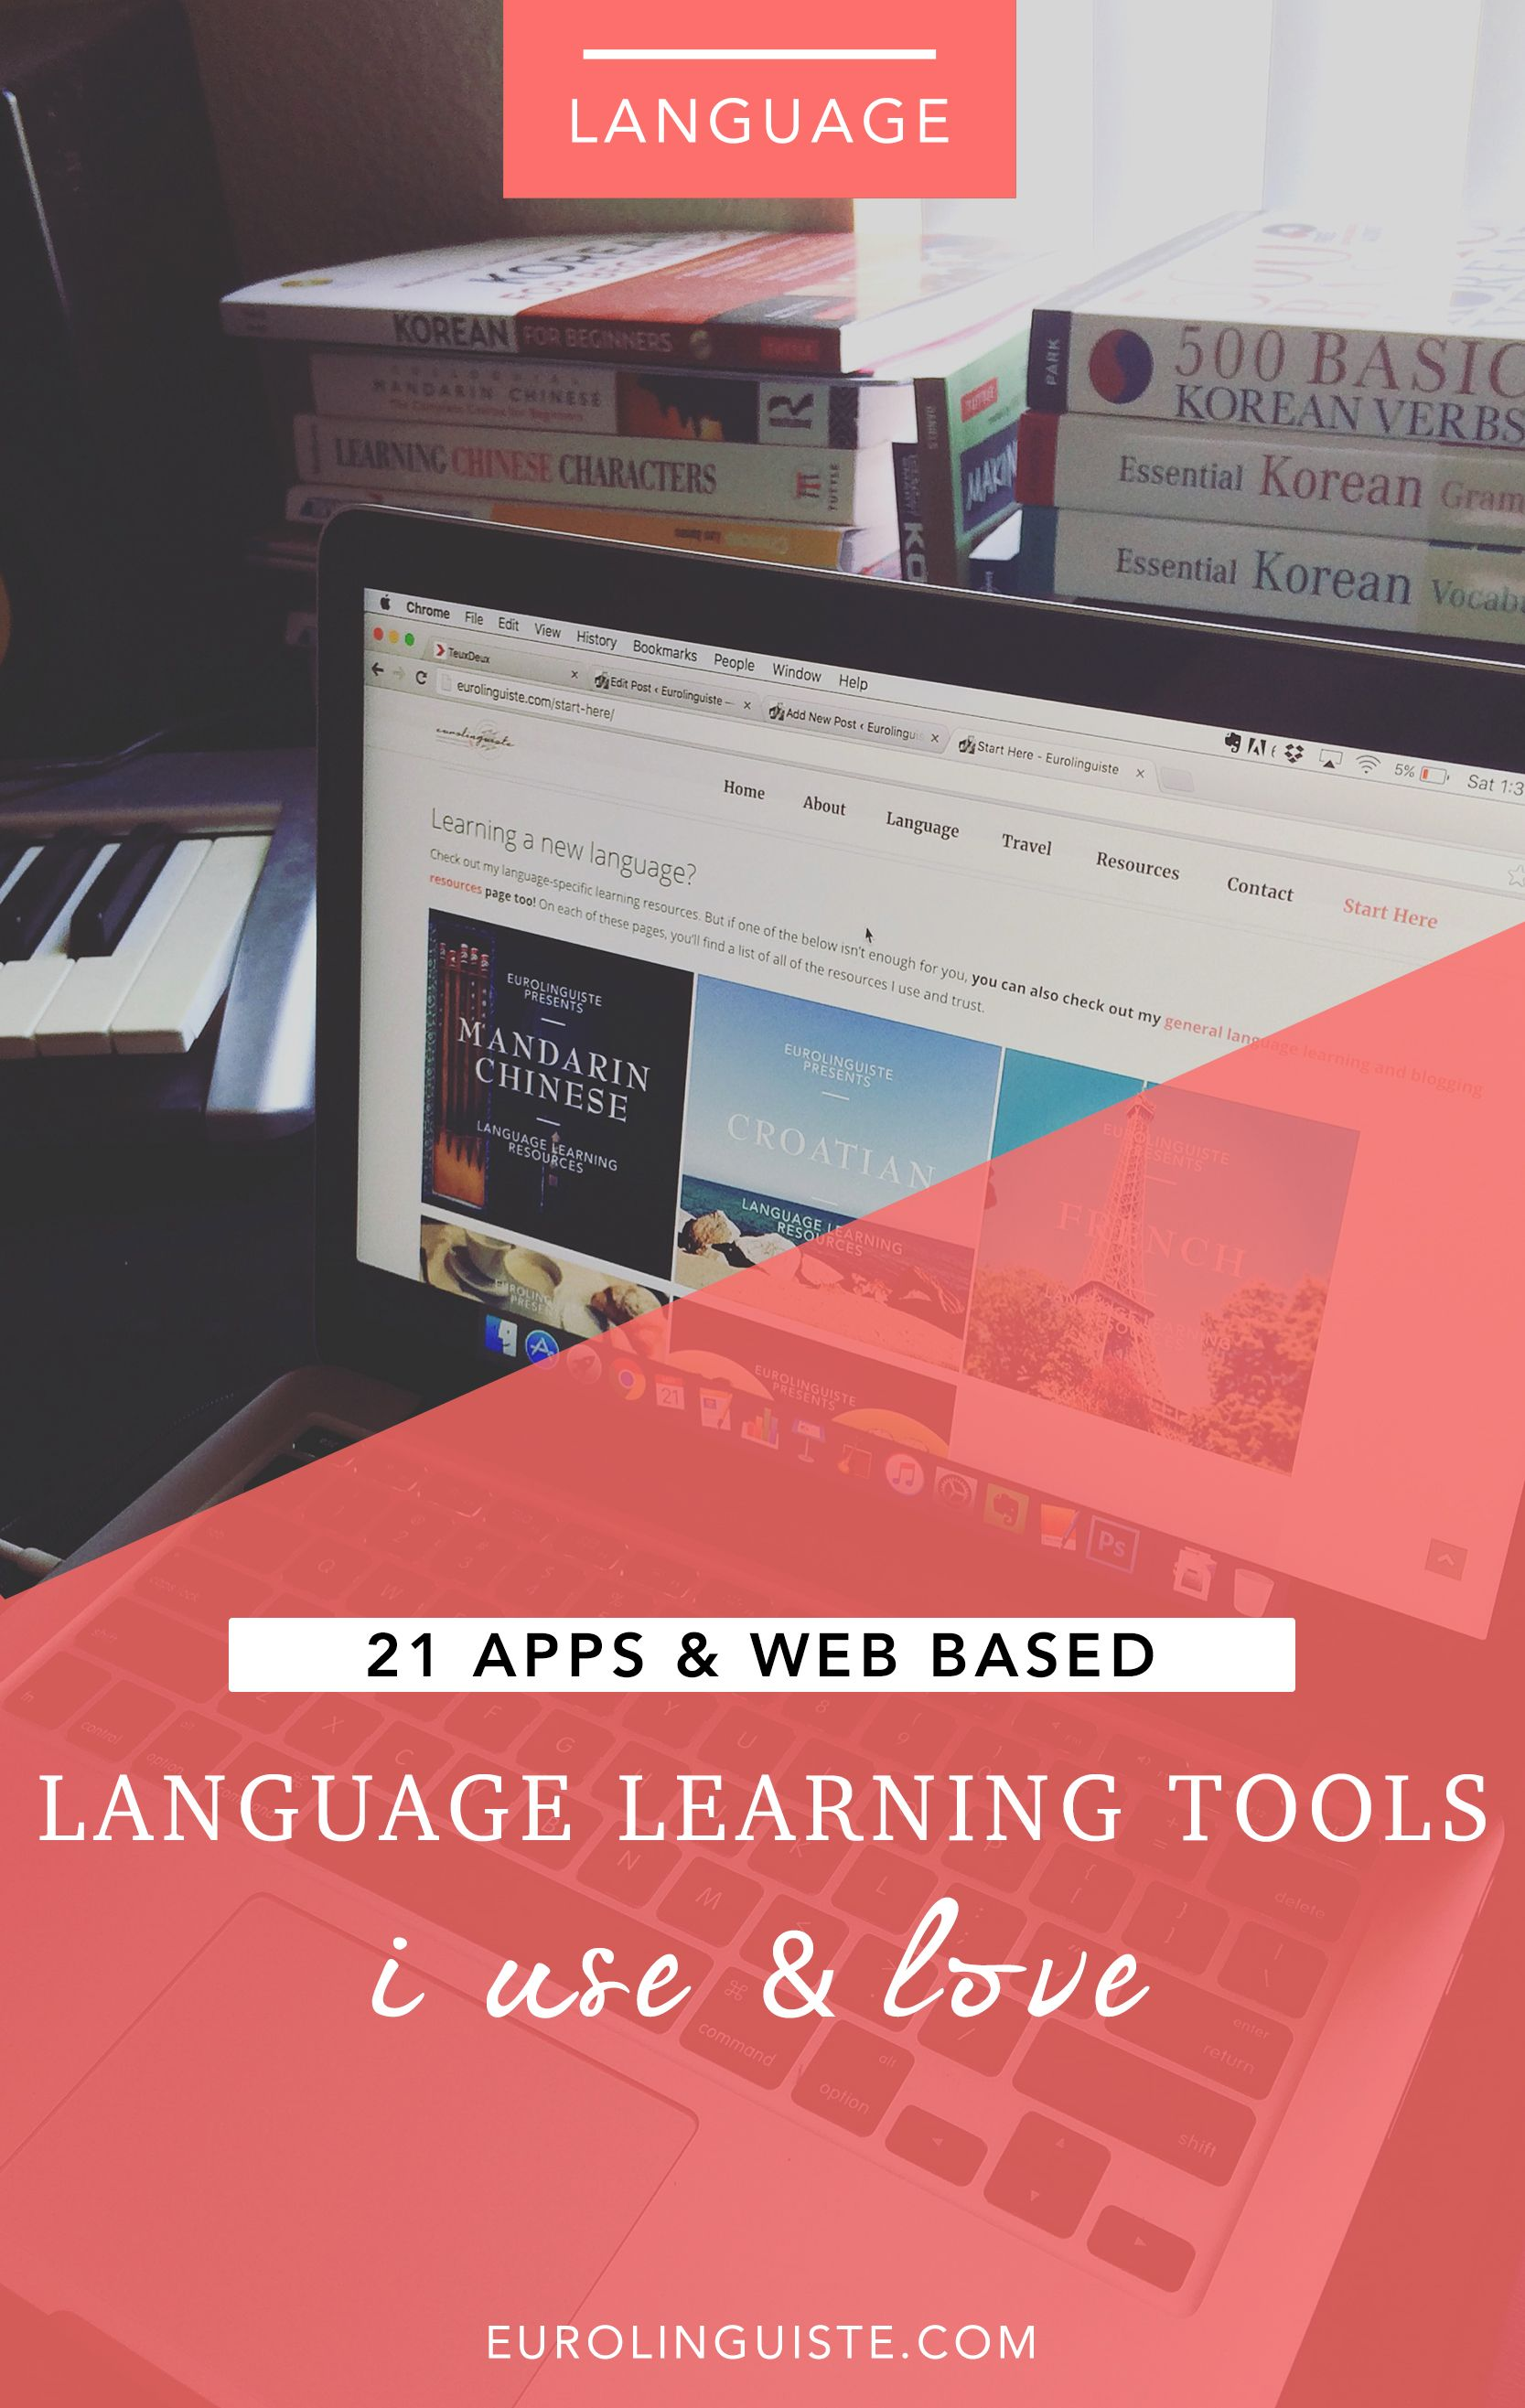 apps web based language learning tools i use and love i m often asked which language learning applications i use regularly and so i thought